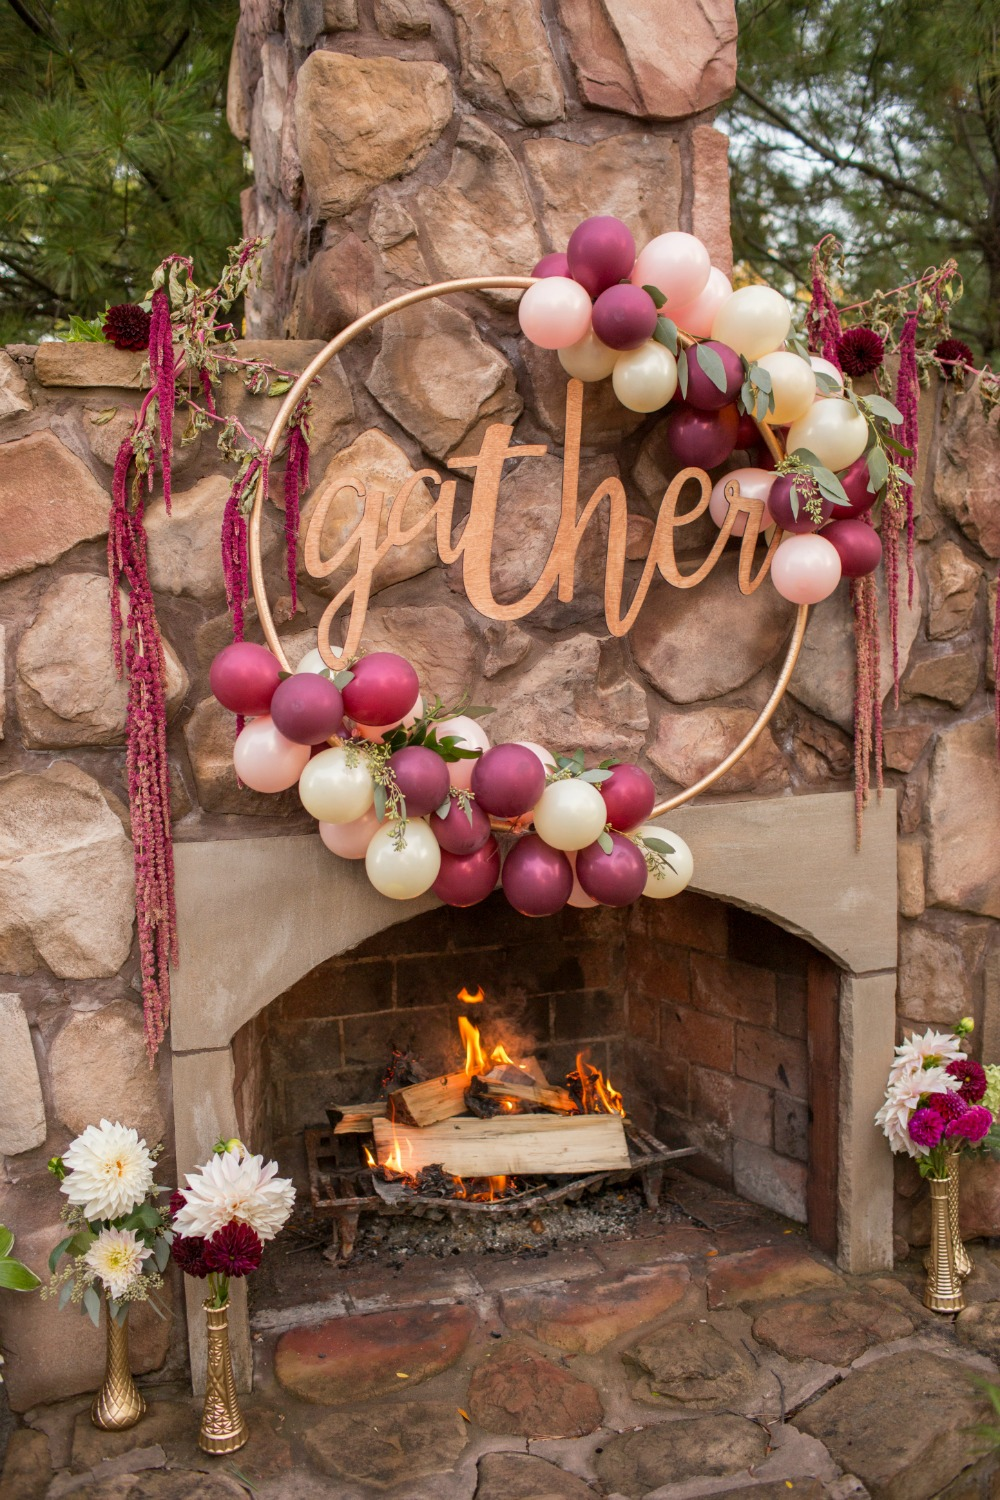 friendsgiving-one-stylish-party-stone-fireplace